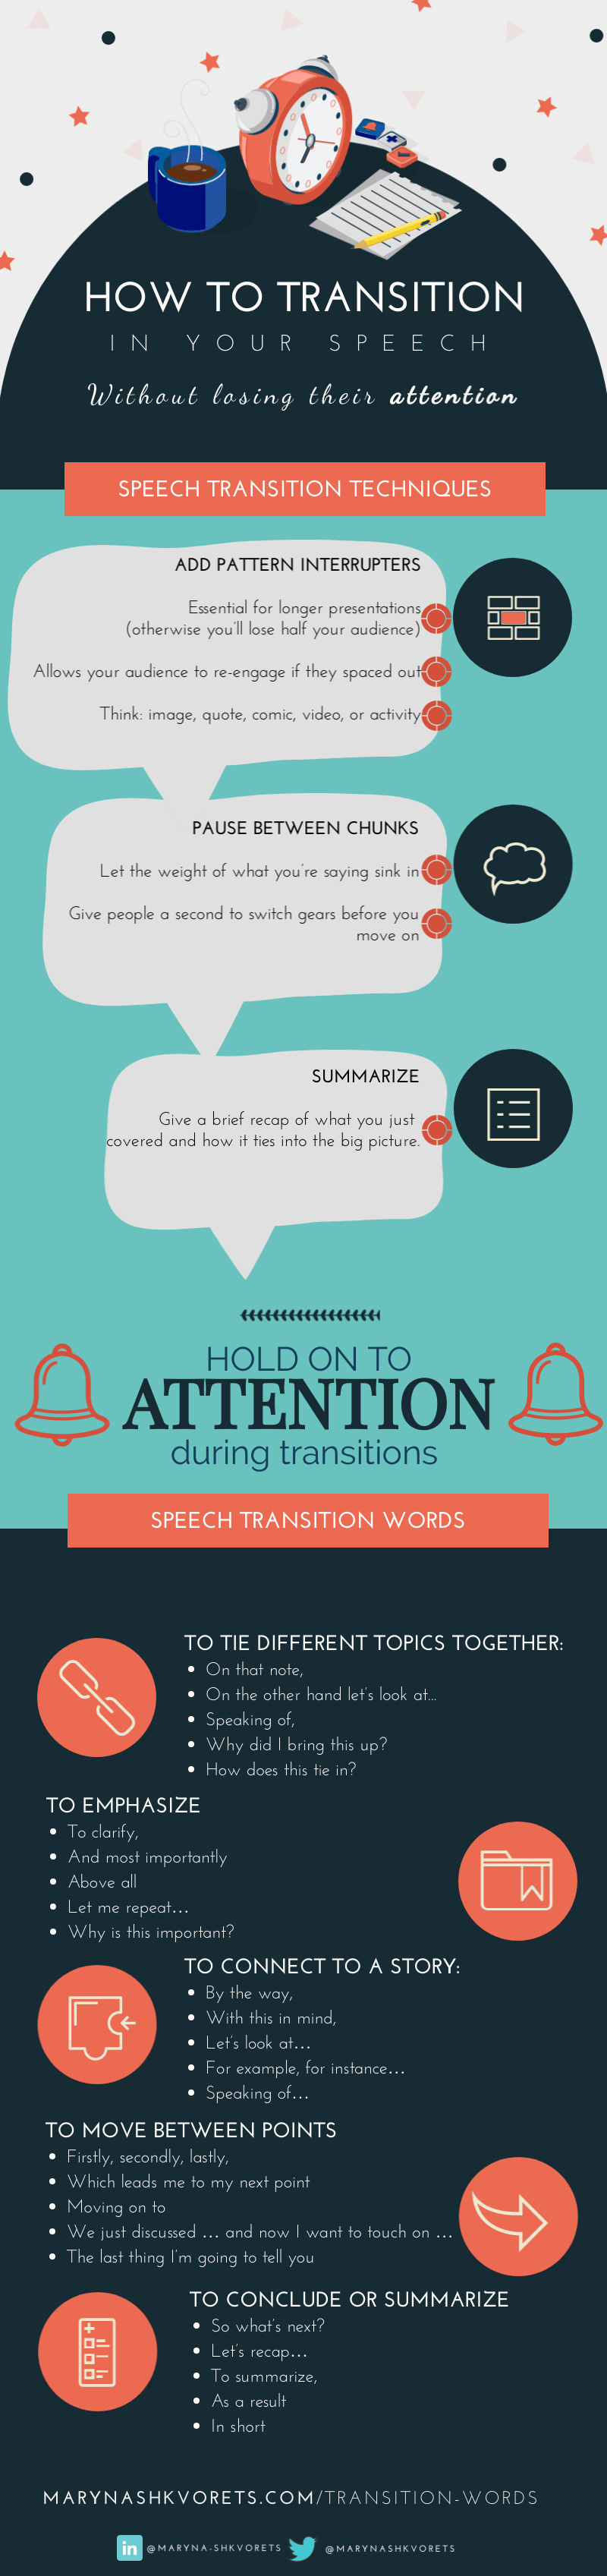 speech-transition-words-infographic-by-maryna-shkvorets